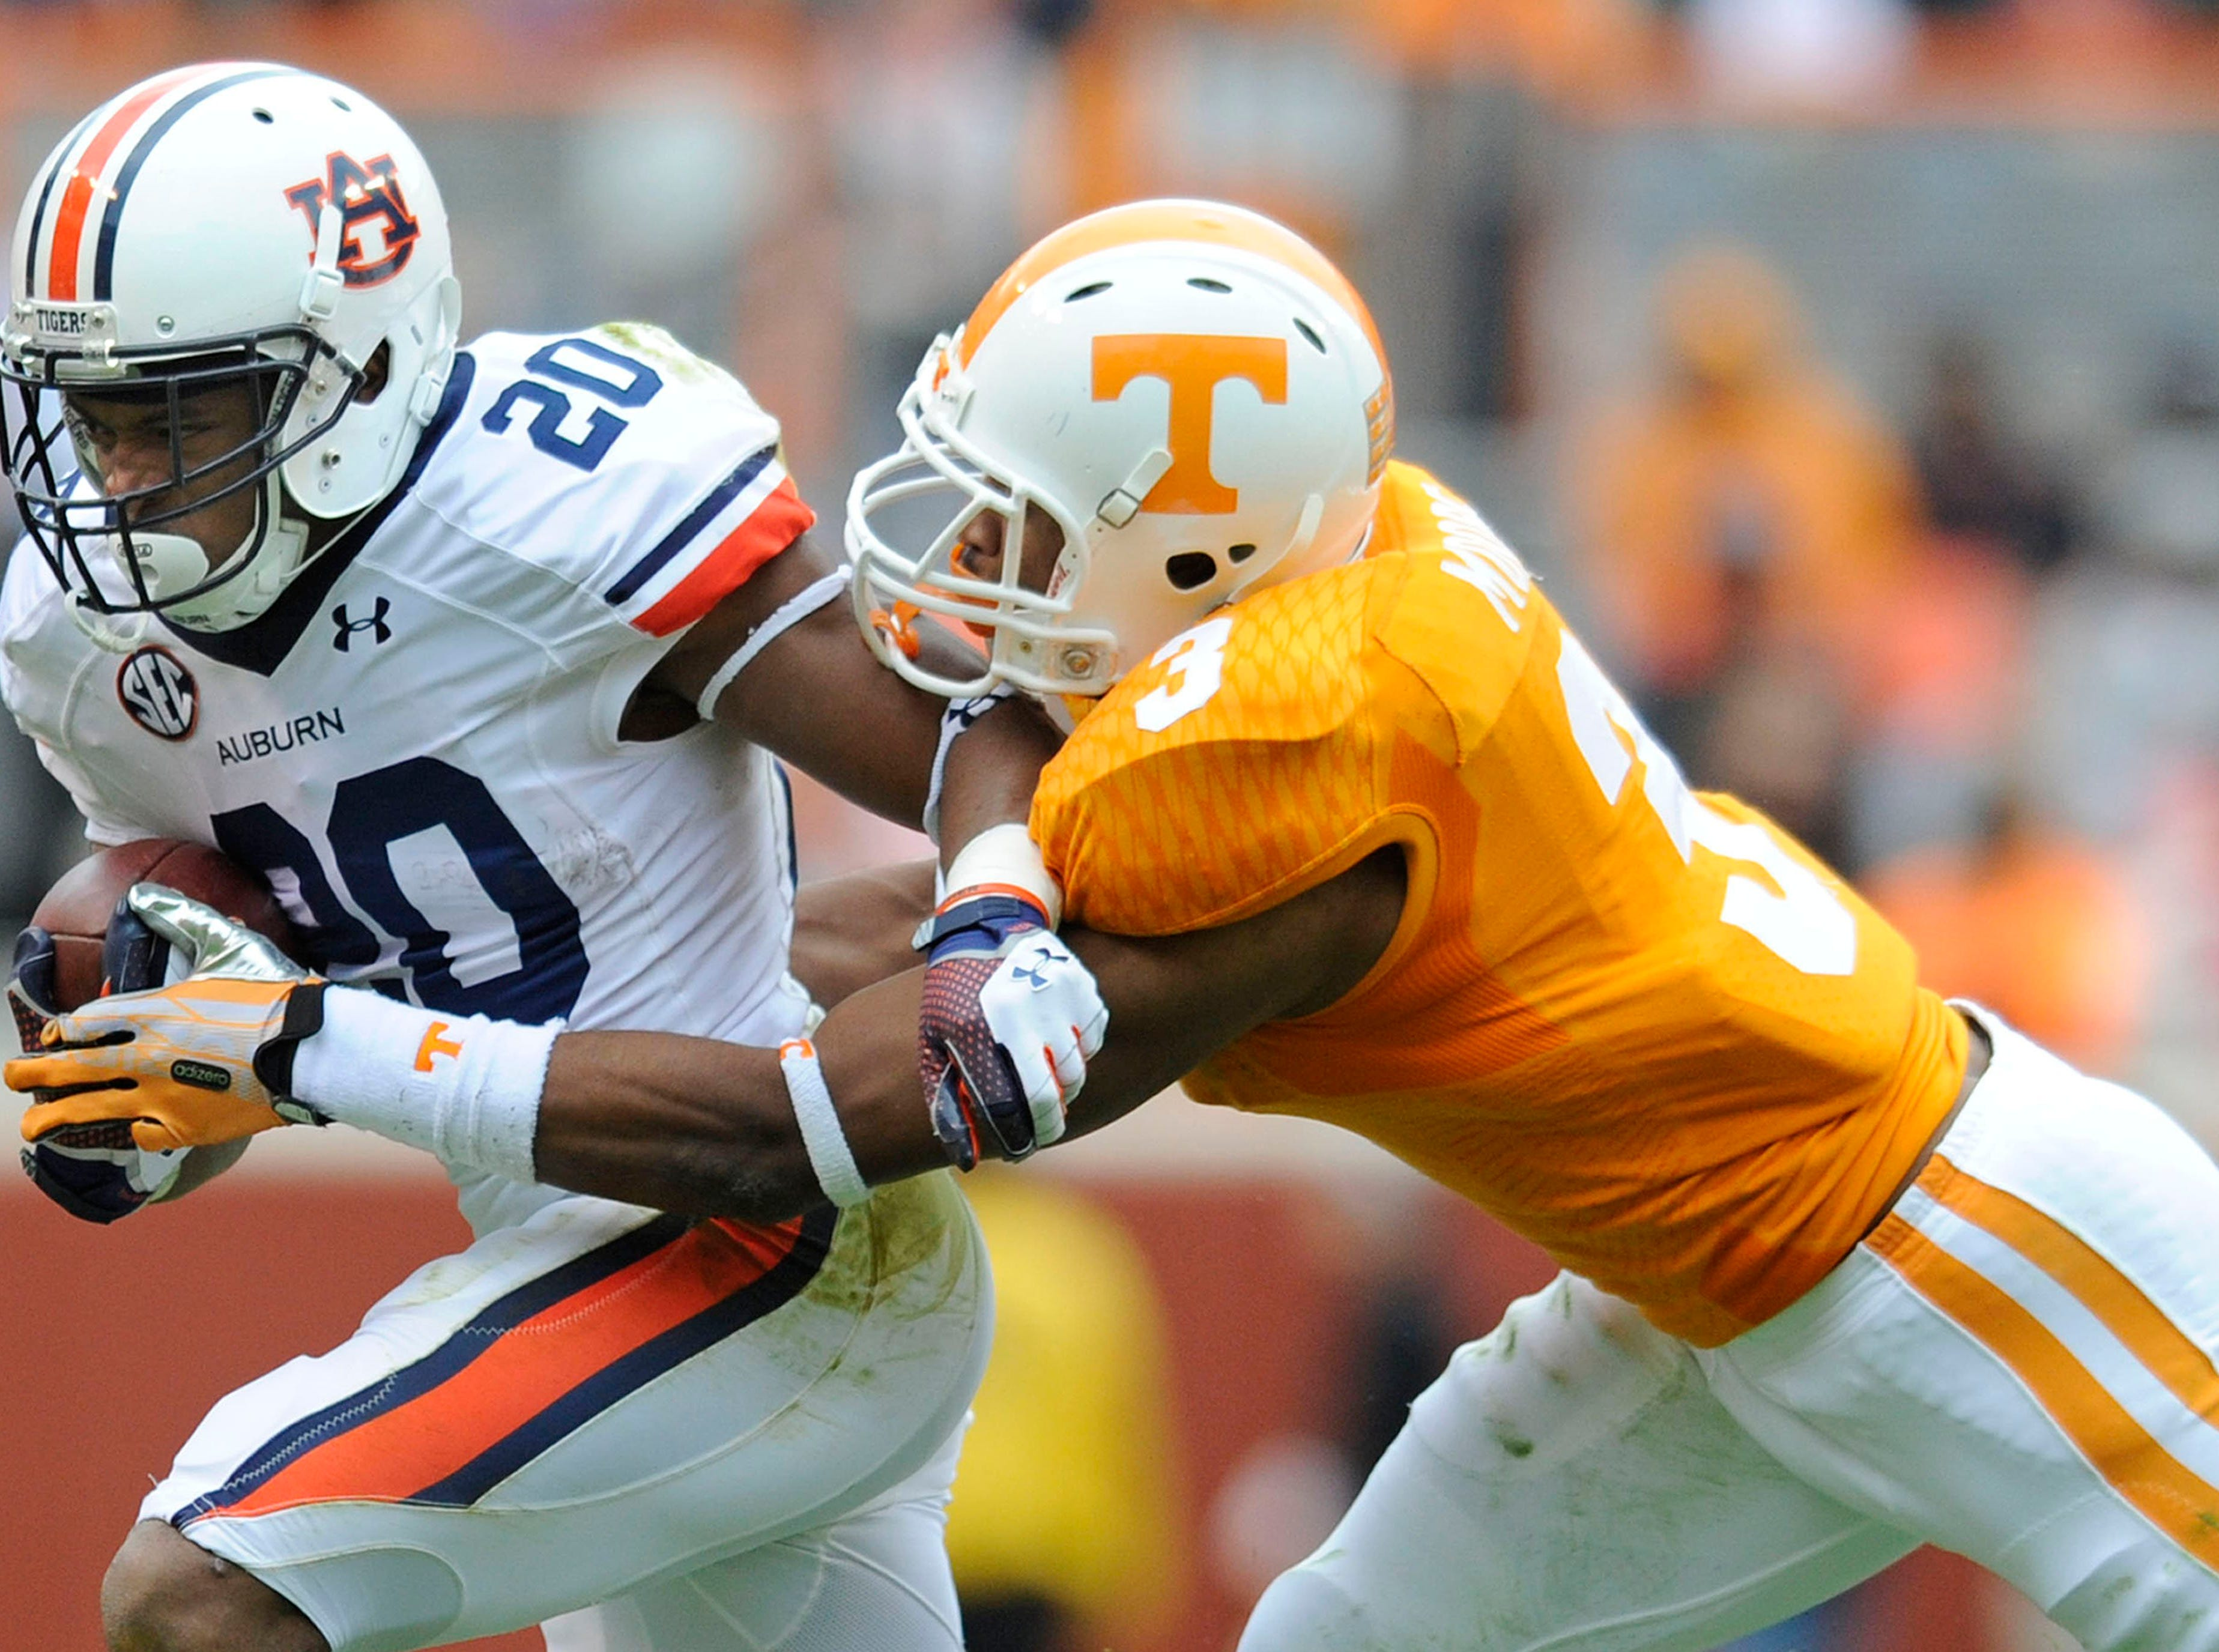 Auburn running back Corey Grant (20) fends off a tackle from Tennessee defensive back Byron Moore (3) during the second half against Auburn at Neyland Stadium in Knoxville on Saturday, Nov. 9, 2013.